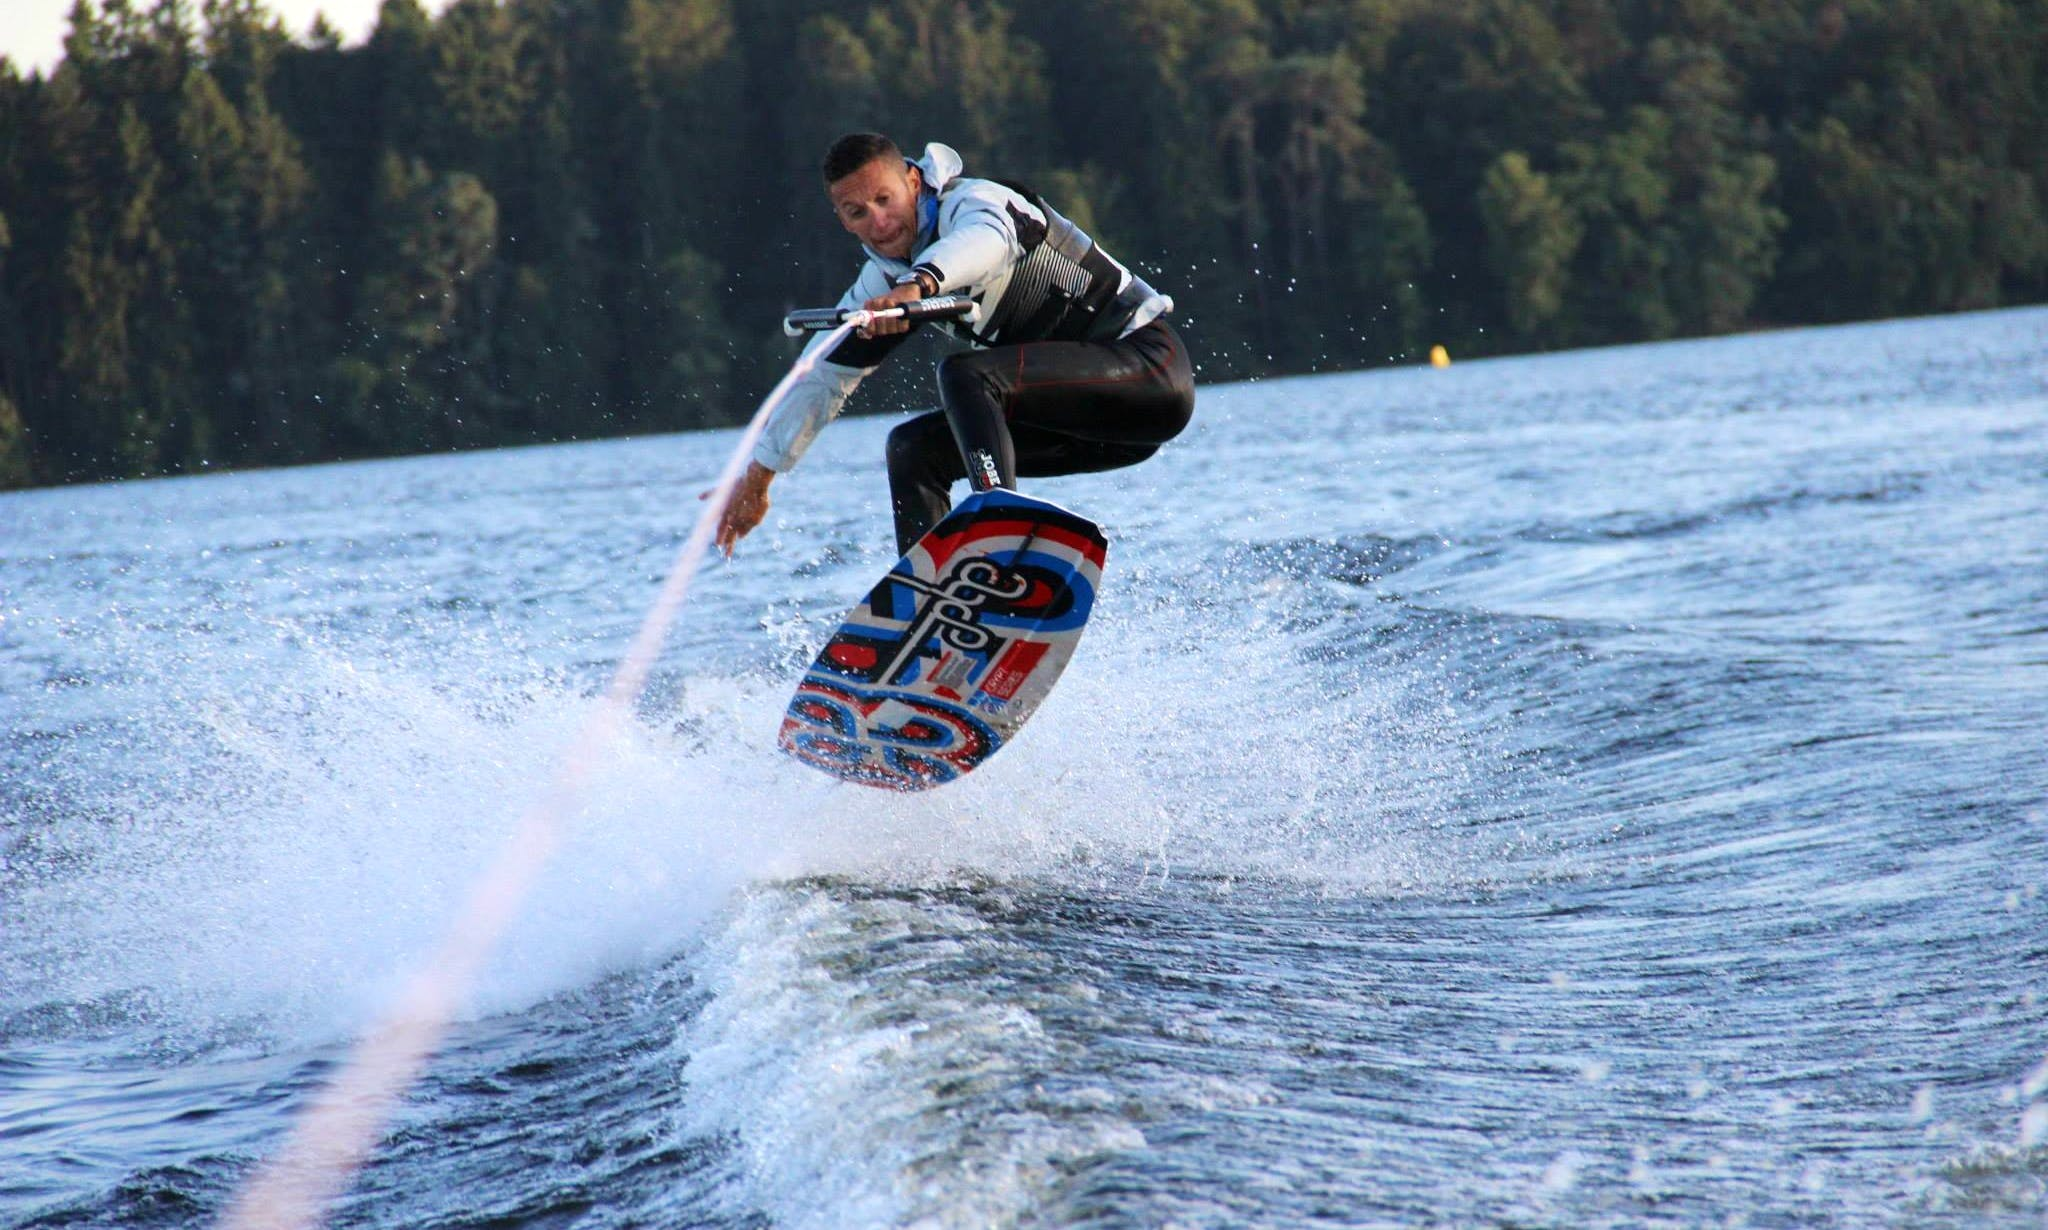 Enjoy Wakeboarding in Montsauche-les-Settons, France